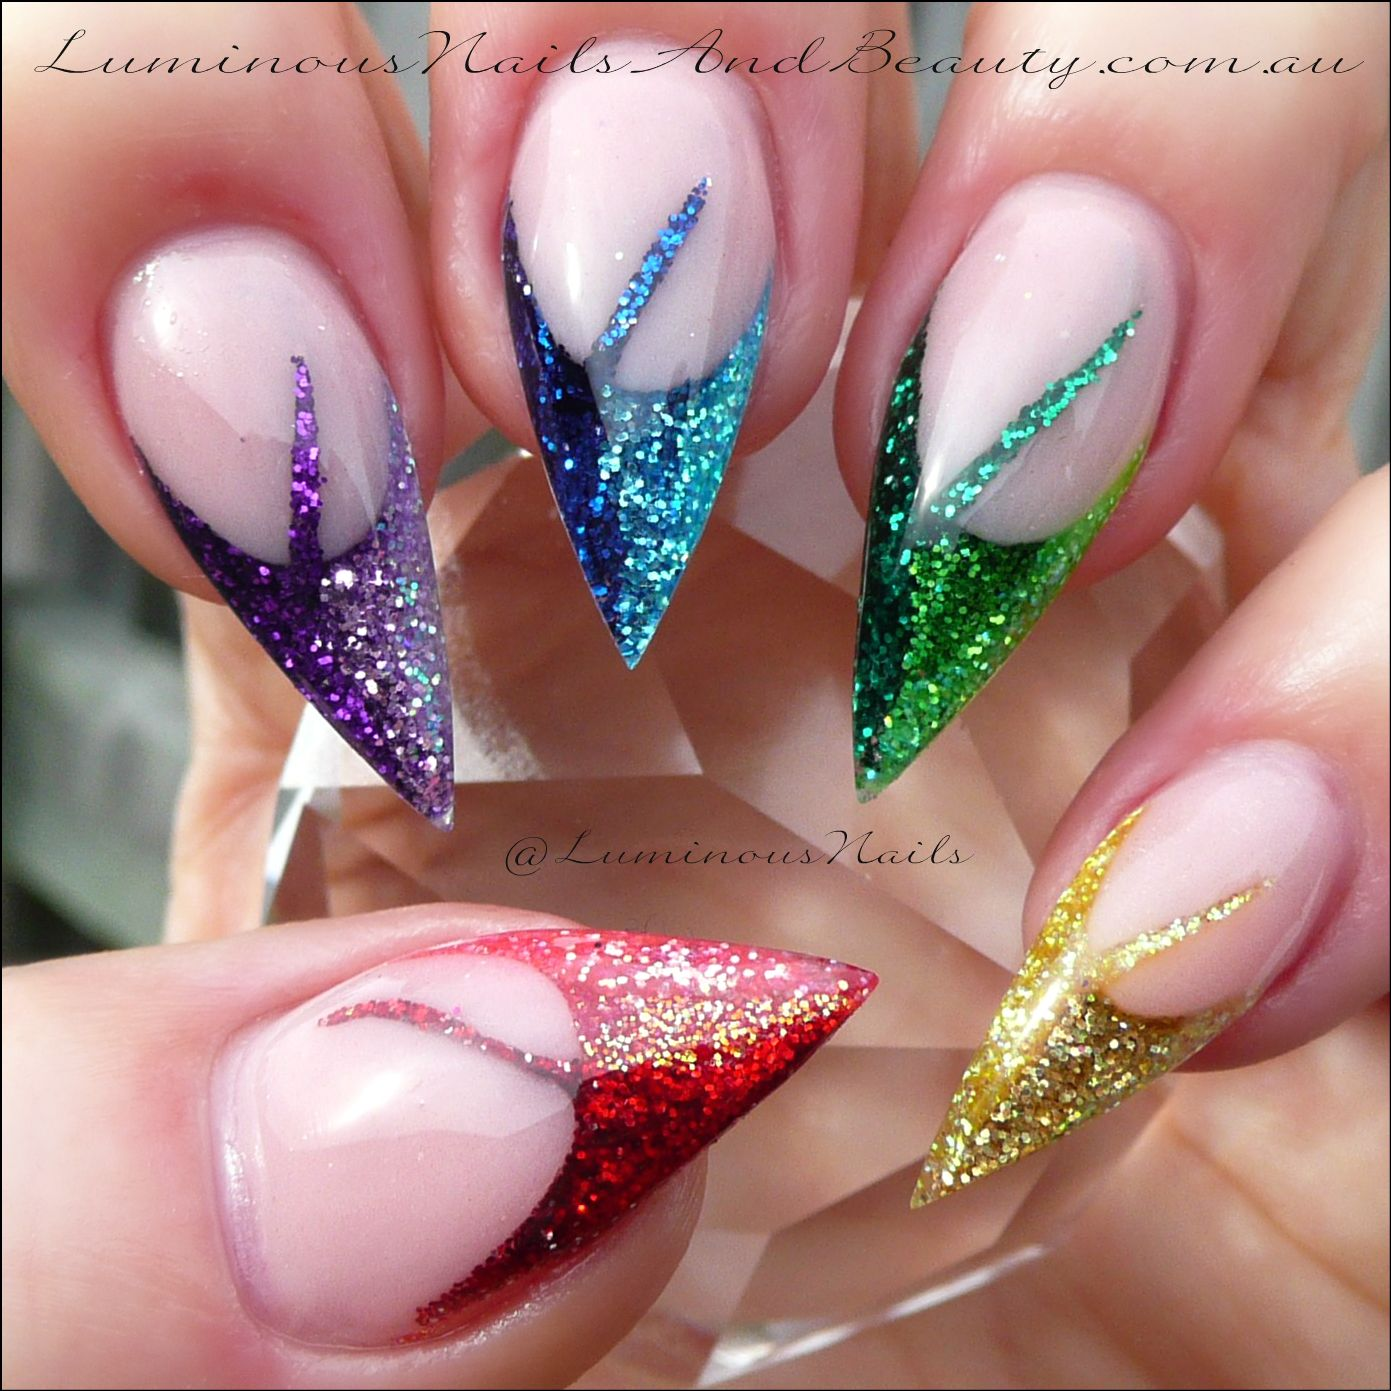 Rainbow Glitter Nails Sculptured Acrylic using Young Nails ...